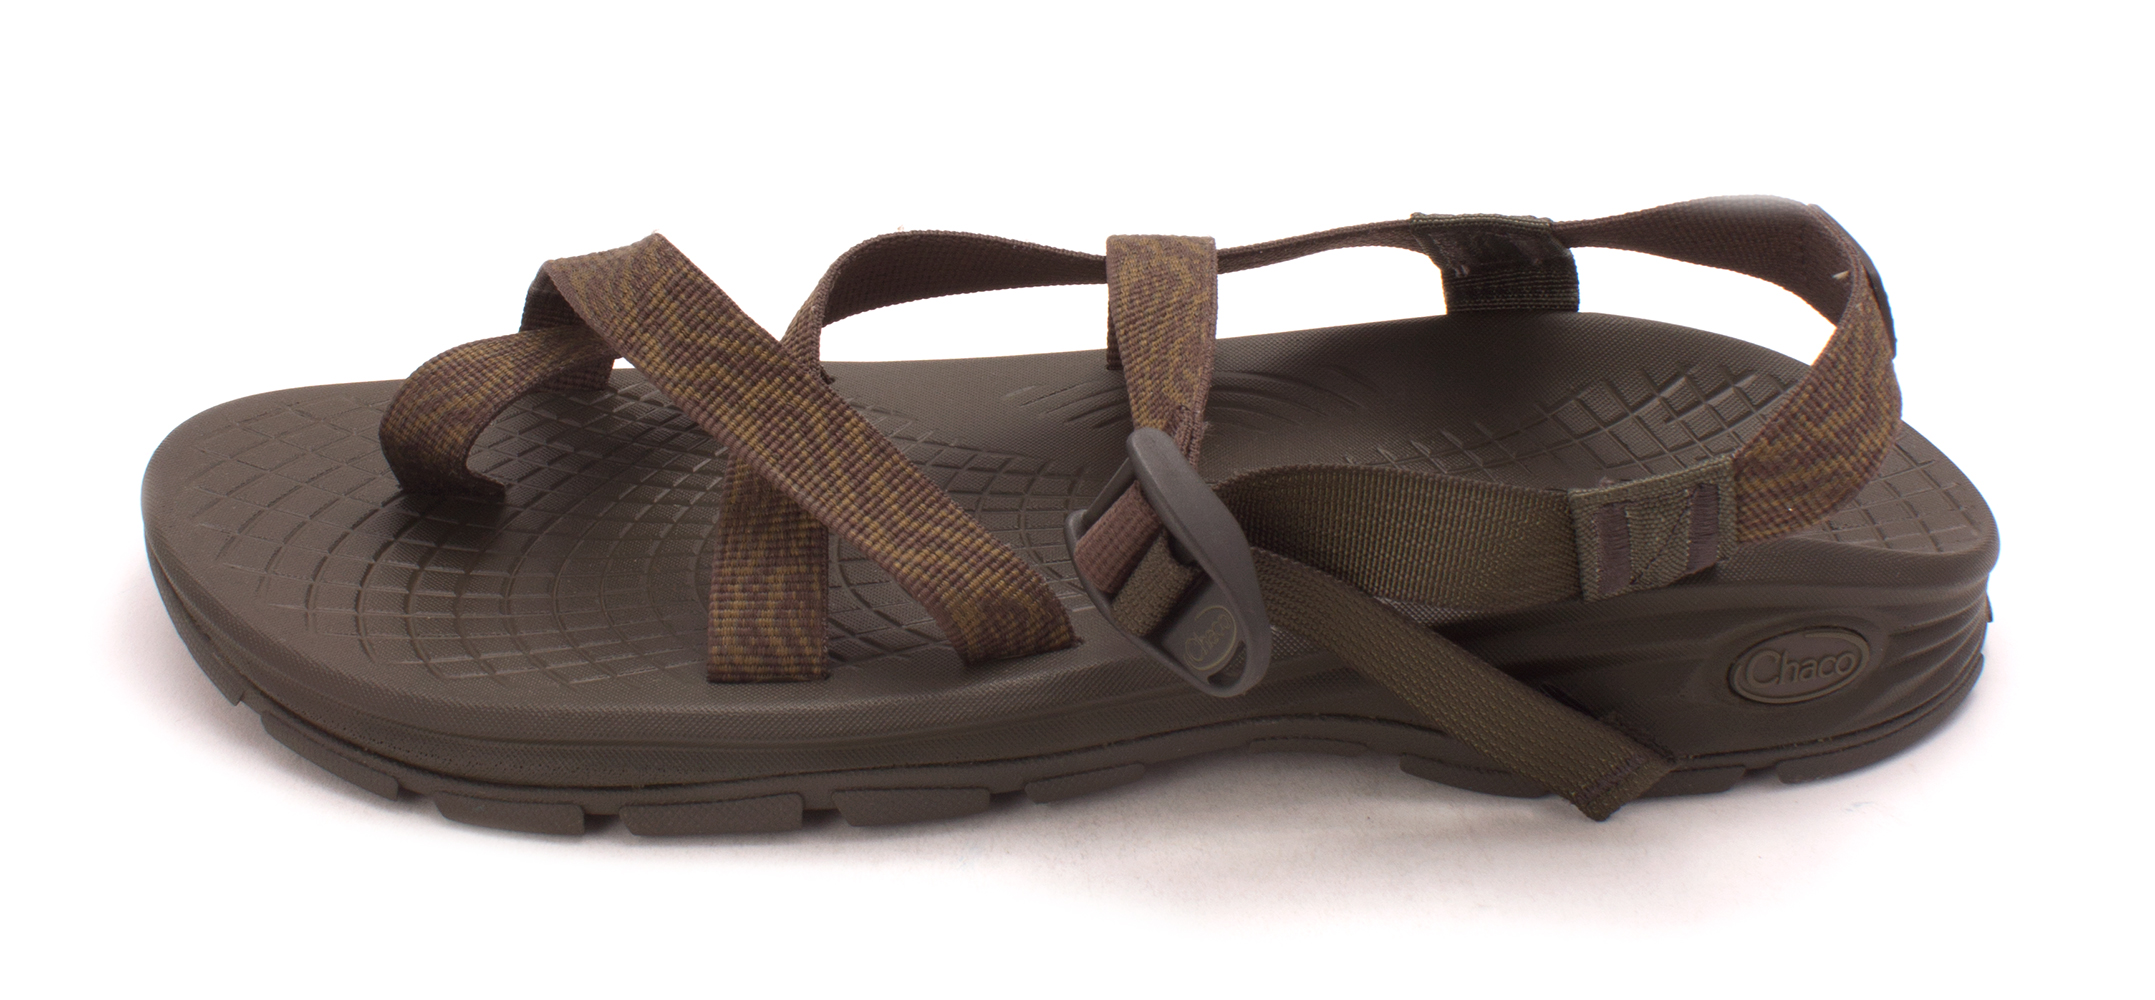 Chaco Mens Zvolv2 Open Toe Sport Sandals by Chaco